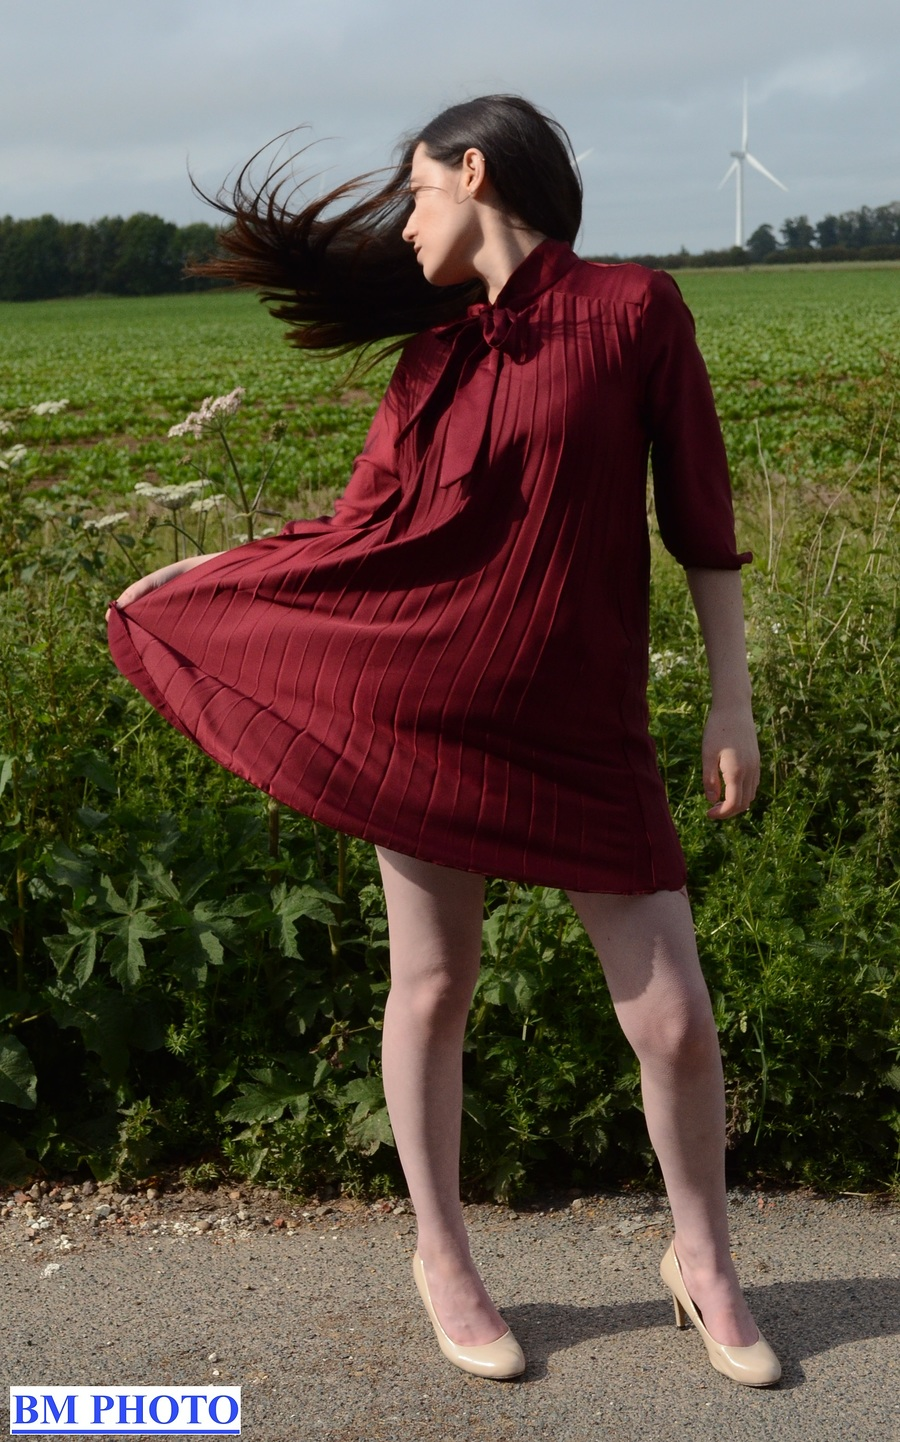 The Waft / Photography by BMPhotoVideo, Model Rachel Emma / Uploaded 28th June 2020 @ 07:44 PM